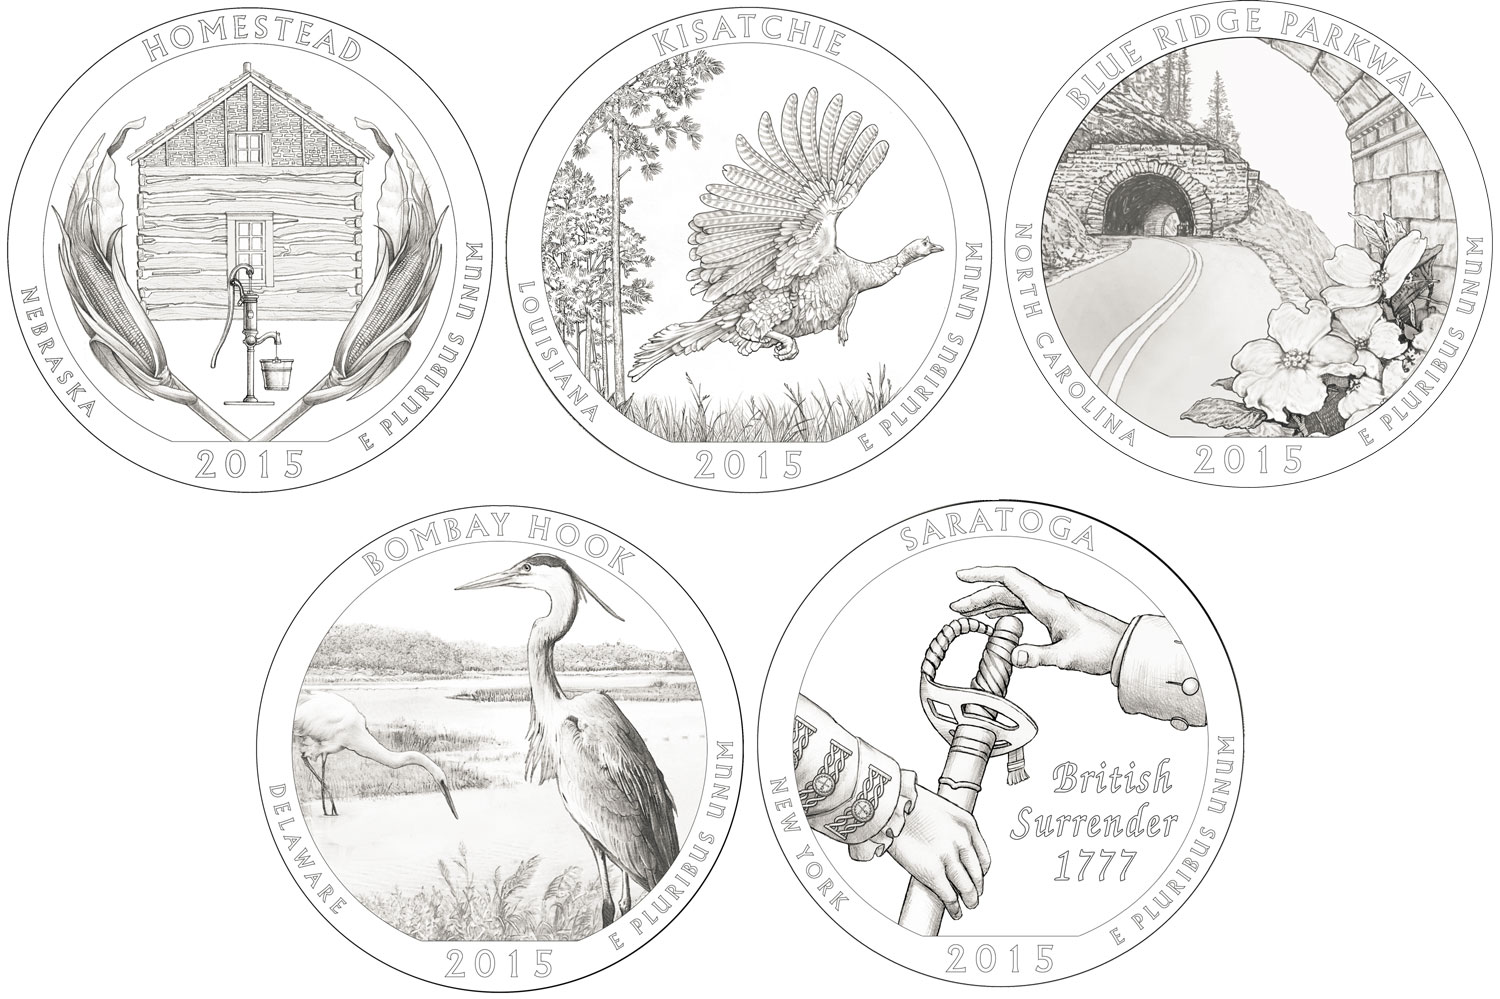 US Mint 2015 Product Schedule Contains Some Surprises